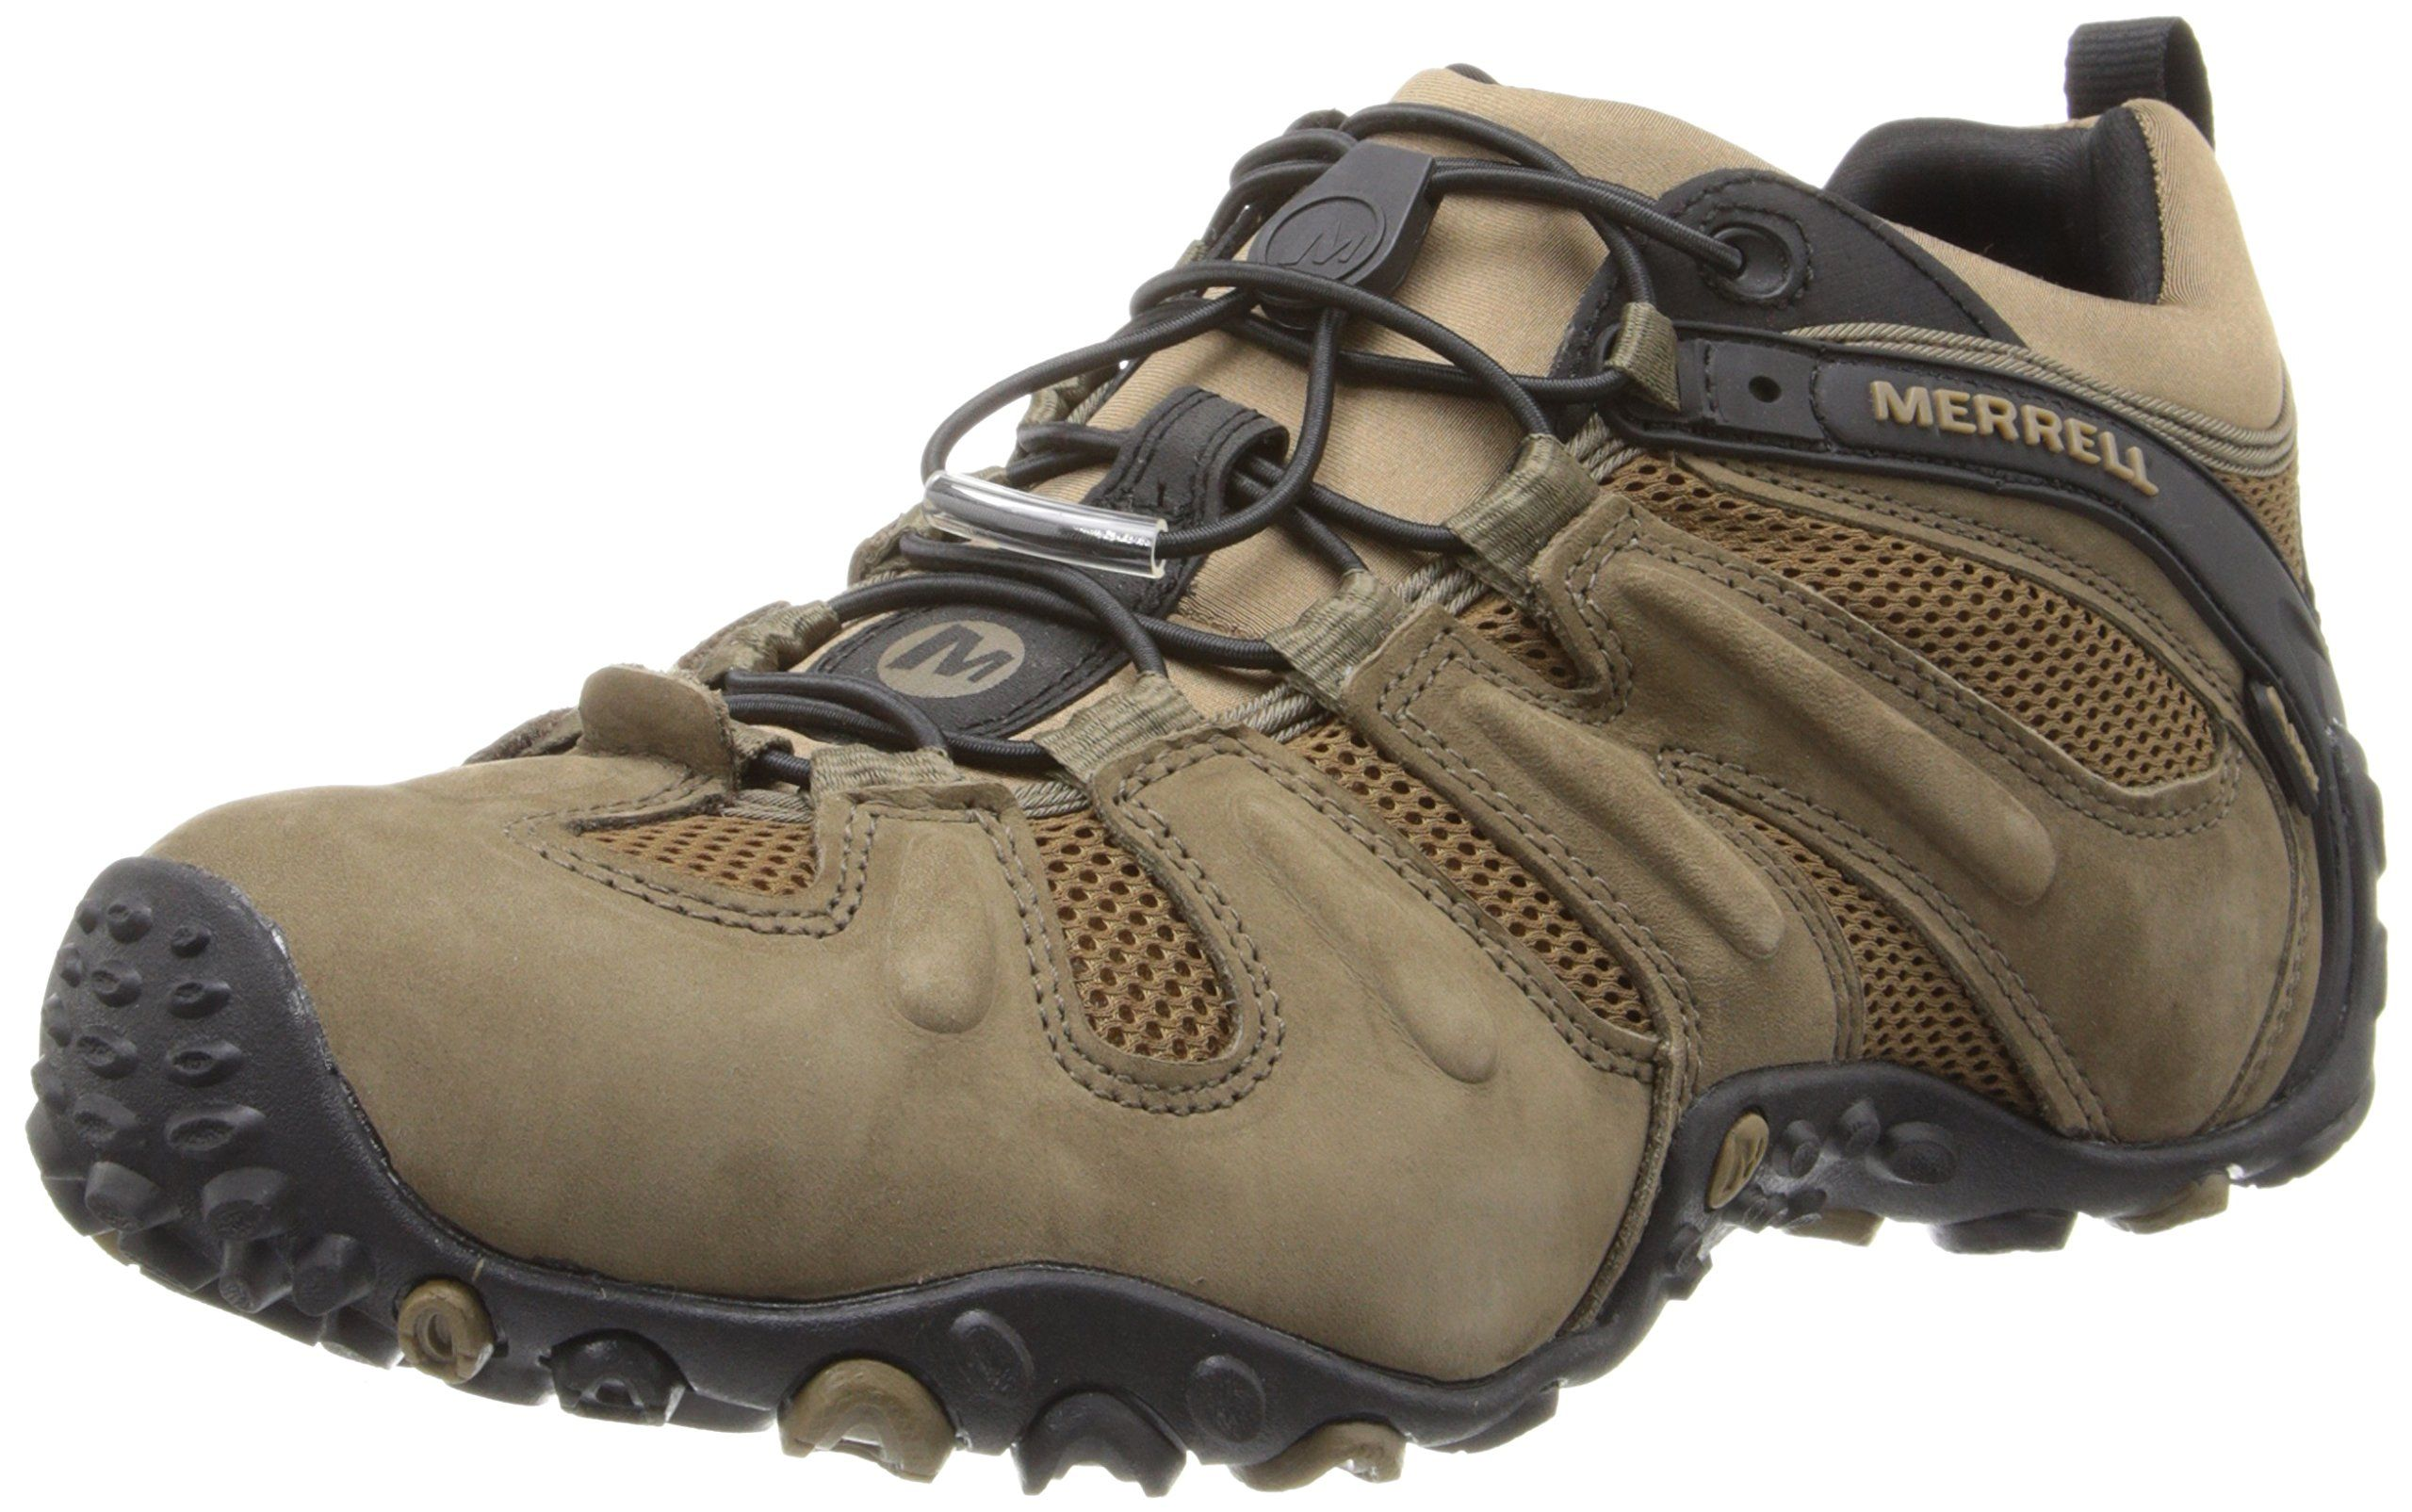 088233ce31e48 Merrell Men's Chameleon Prime Stretch Waterproof Hiking Shoe,Canteen ...